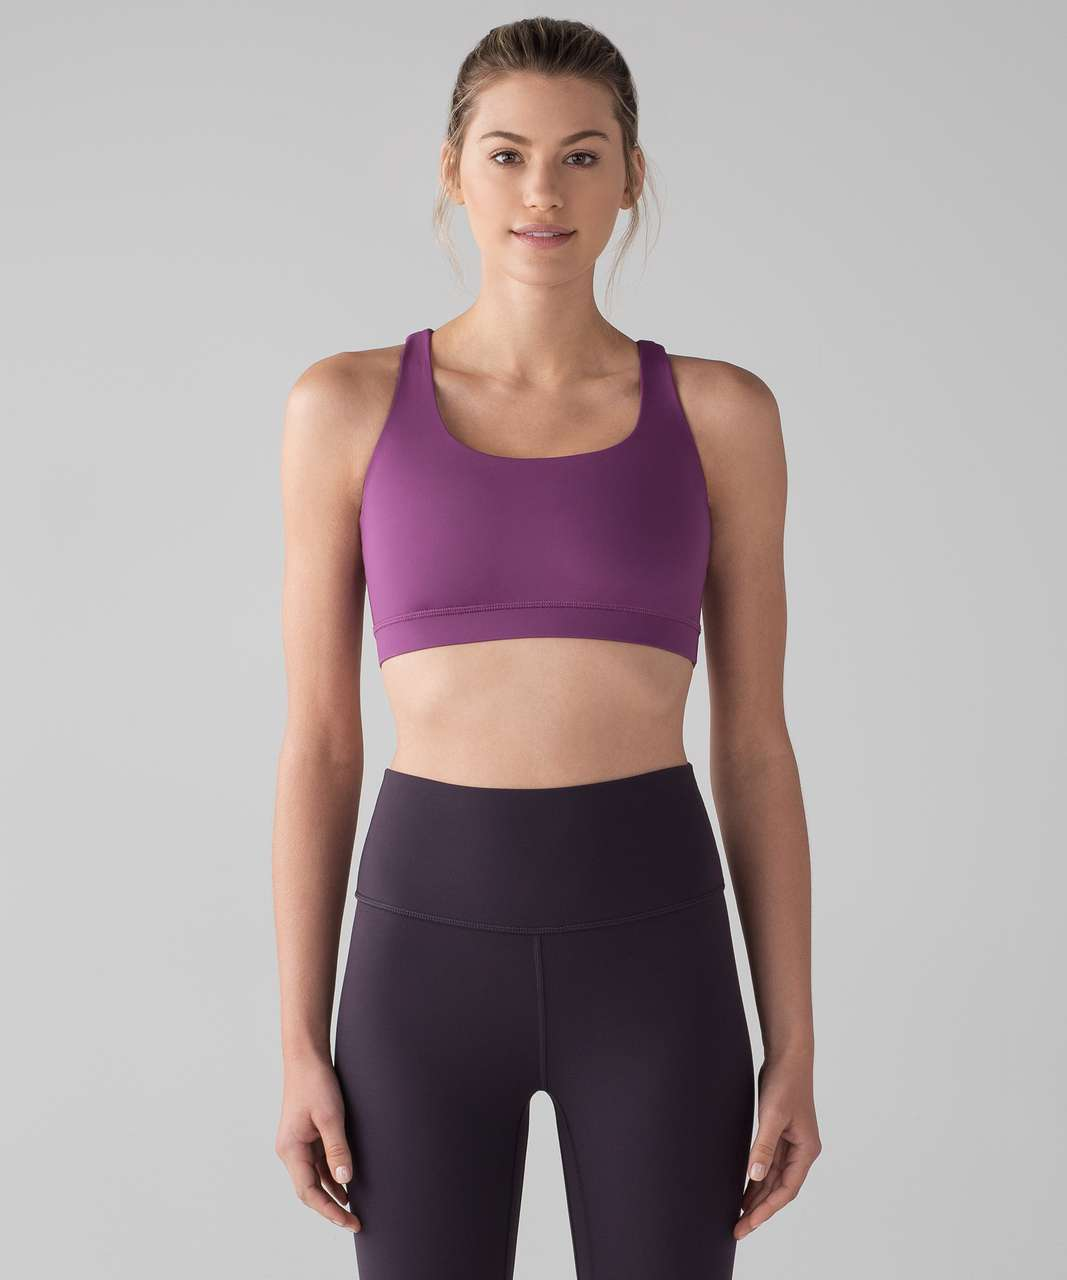 Lululemon Energy Bra - Dark Mystic